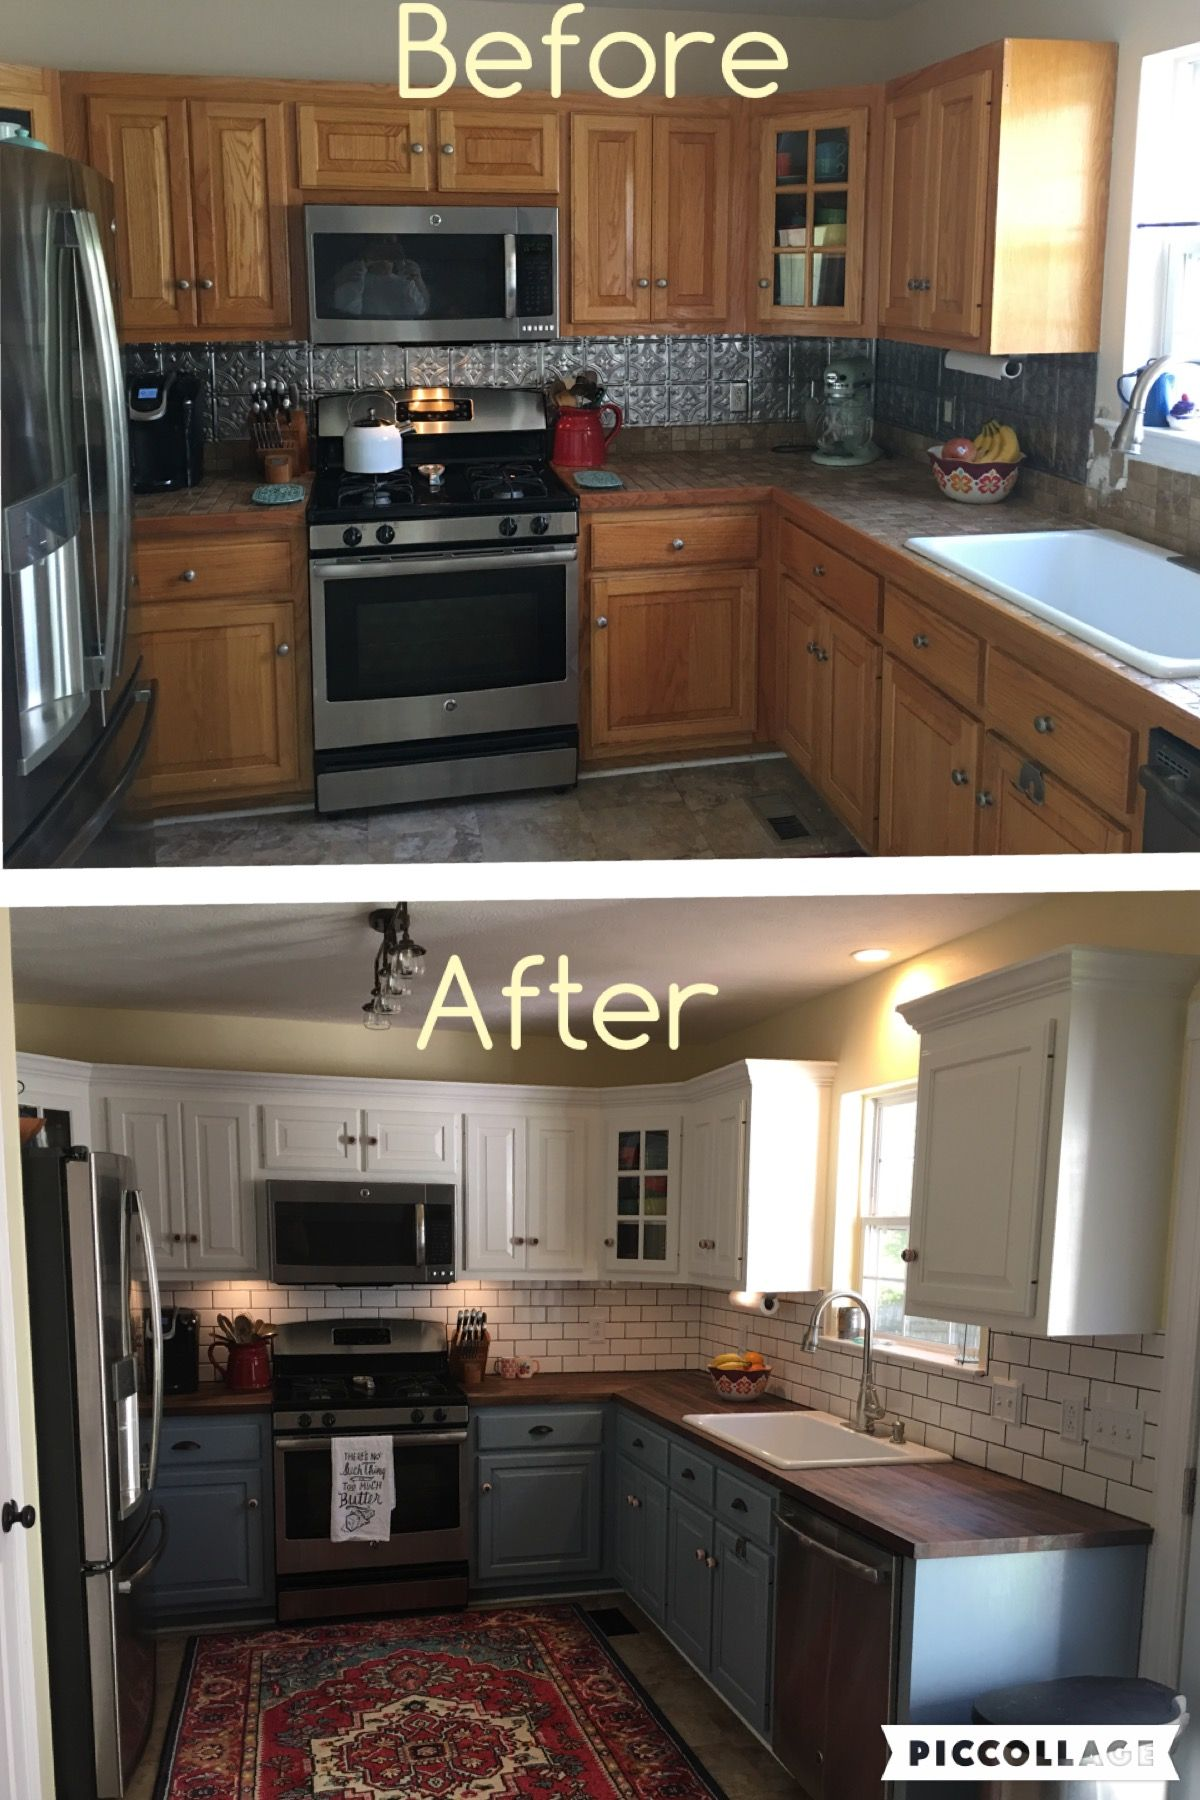 Two toned cabinets Valspar Cabinet Enamel from Lowes=Successful